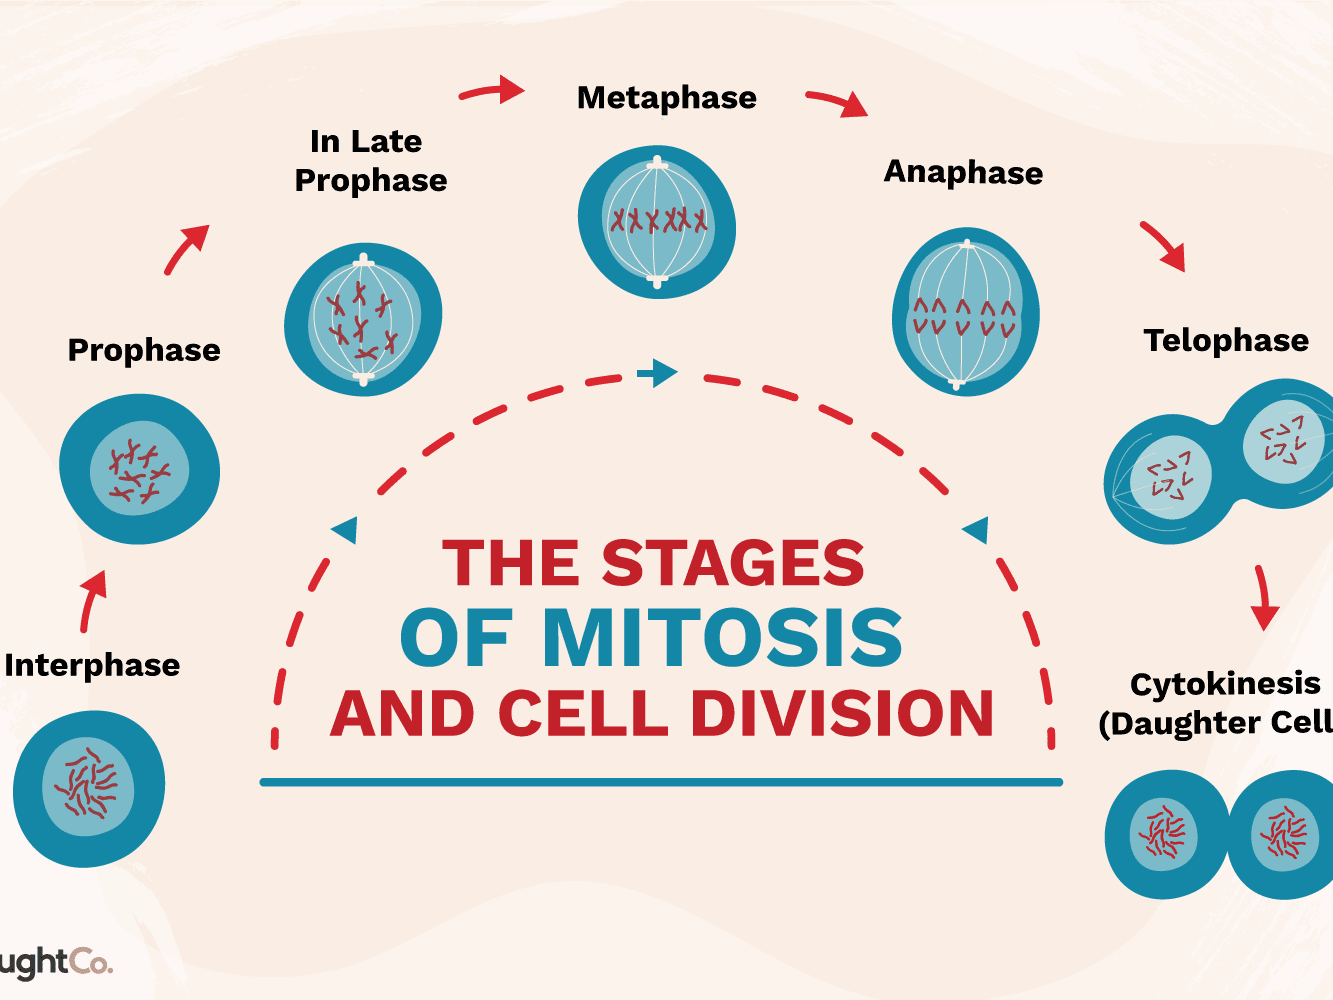 stages of mitosis diagram labeled 2006 chrysler pacifica serpentine belt the and cell division 373534 v5 5b84992cc9e77c00574f03d3 png